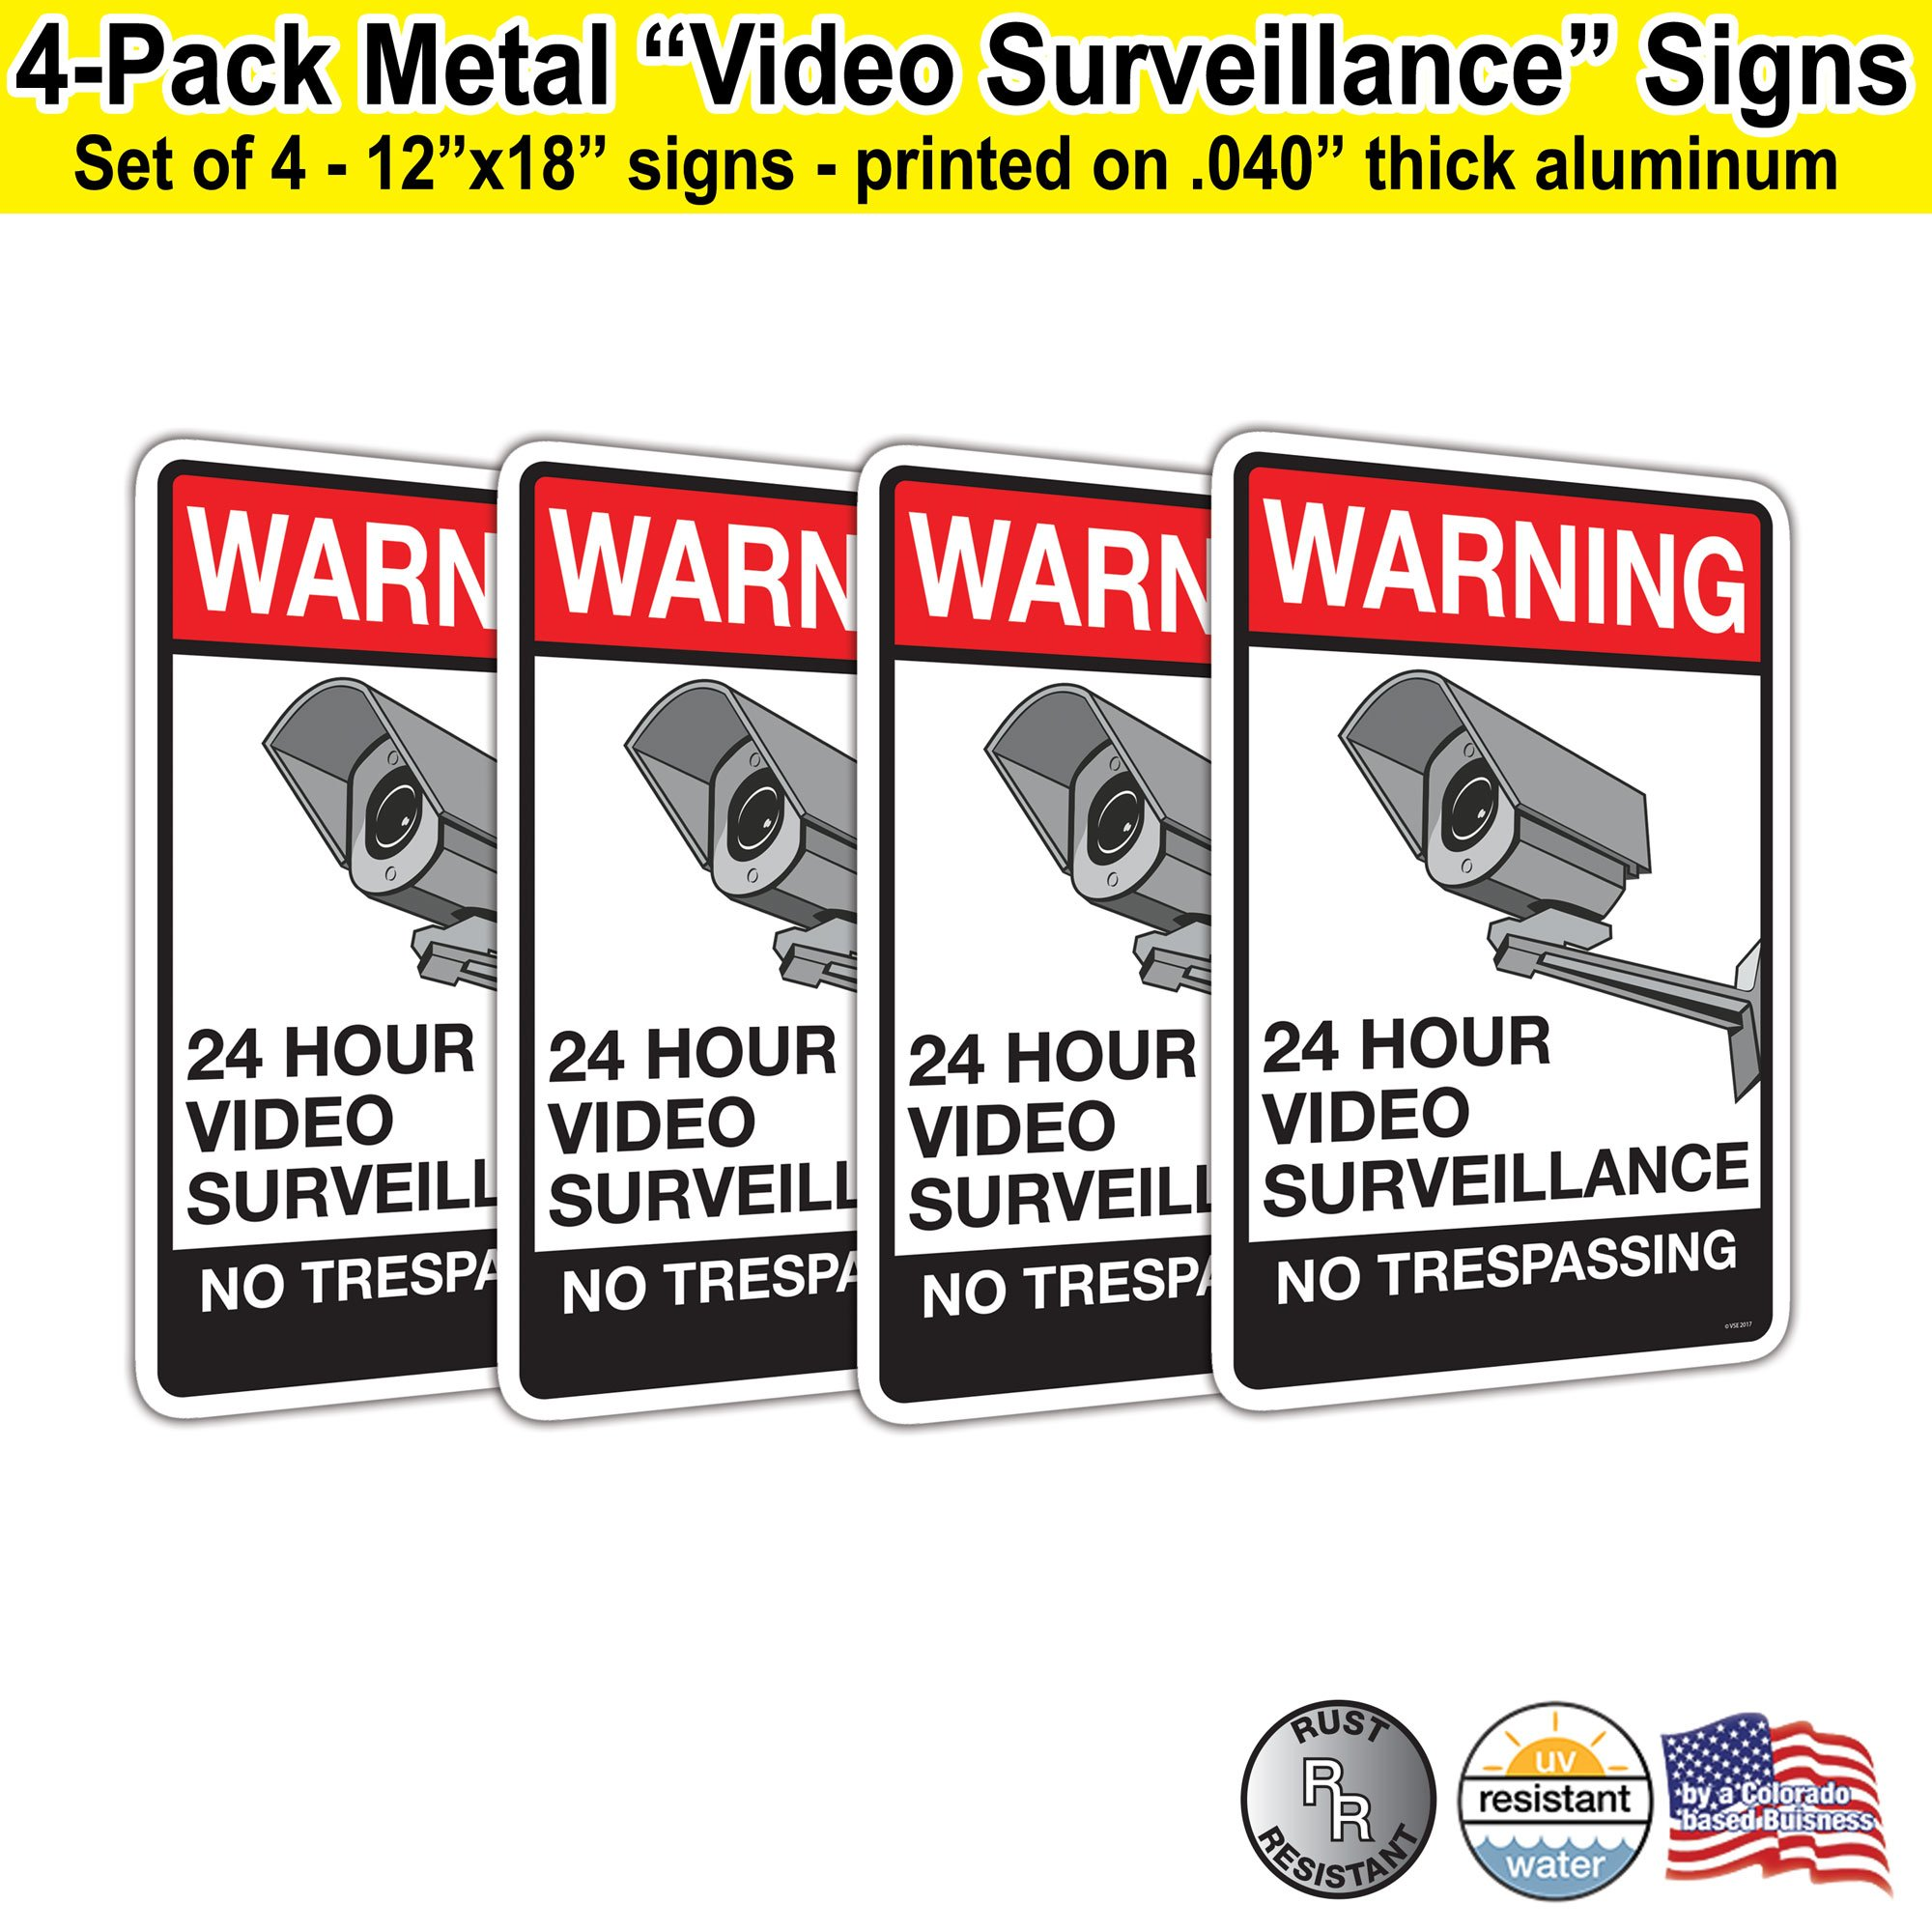 Visibility Signage Warning 24 Hour Video Surveillance No Trespassing 12x18 Heavy Duty Aluminum Metal Sign.040 Aluminum Color Printed Red Black on White (4) by Visibility Signage